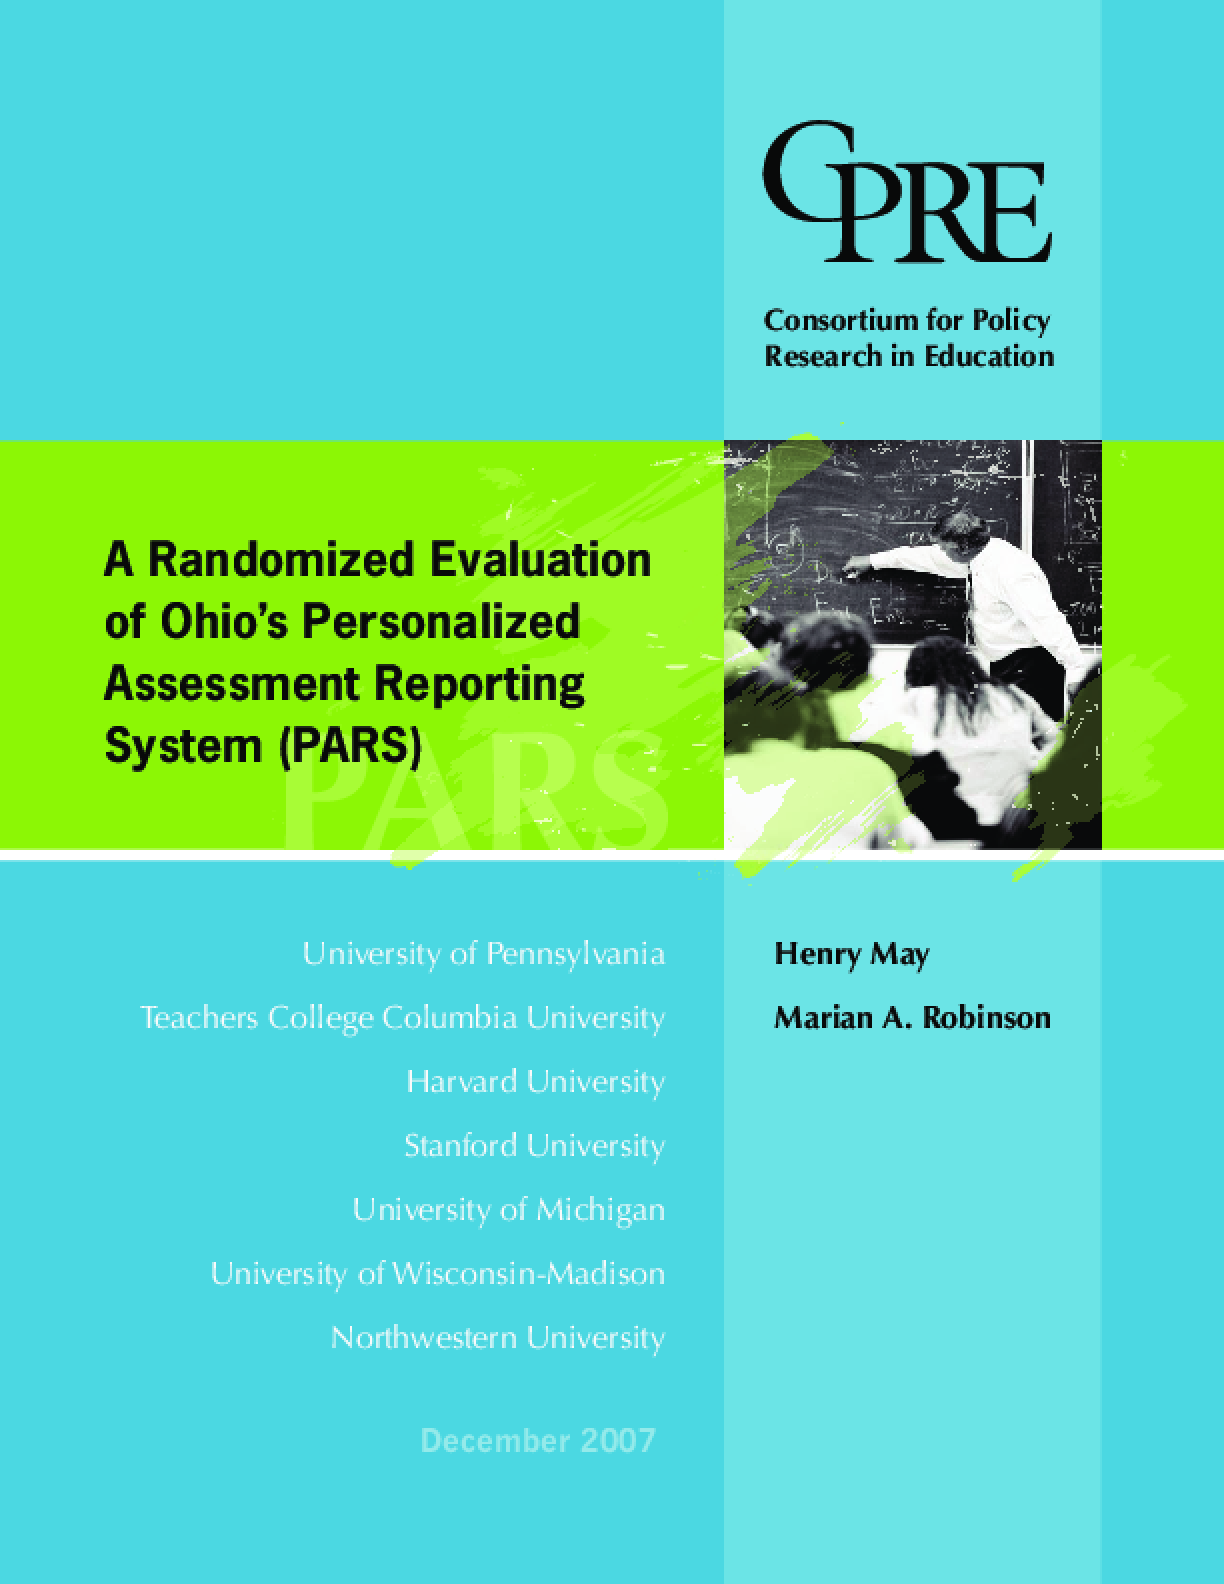 A Randomized Evaluation of Ohio's Personalized Assessment Reporting System (PARS)